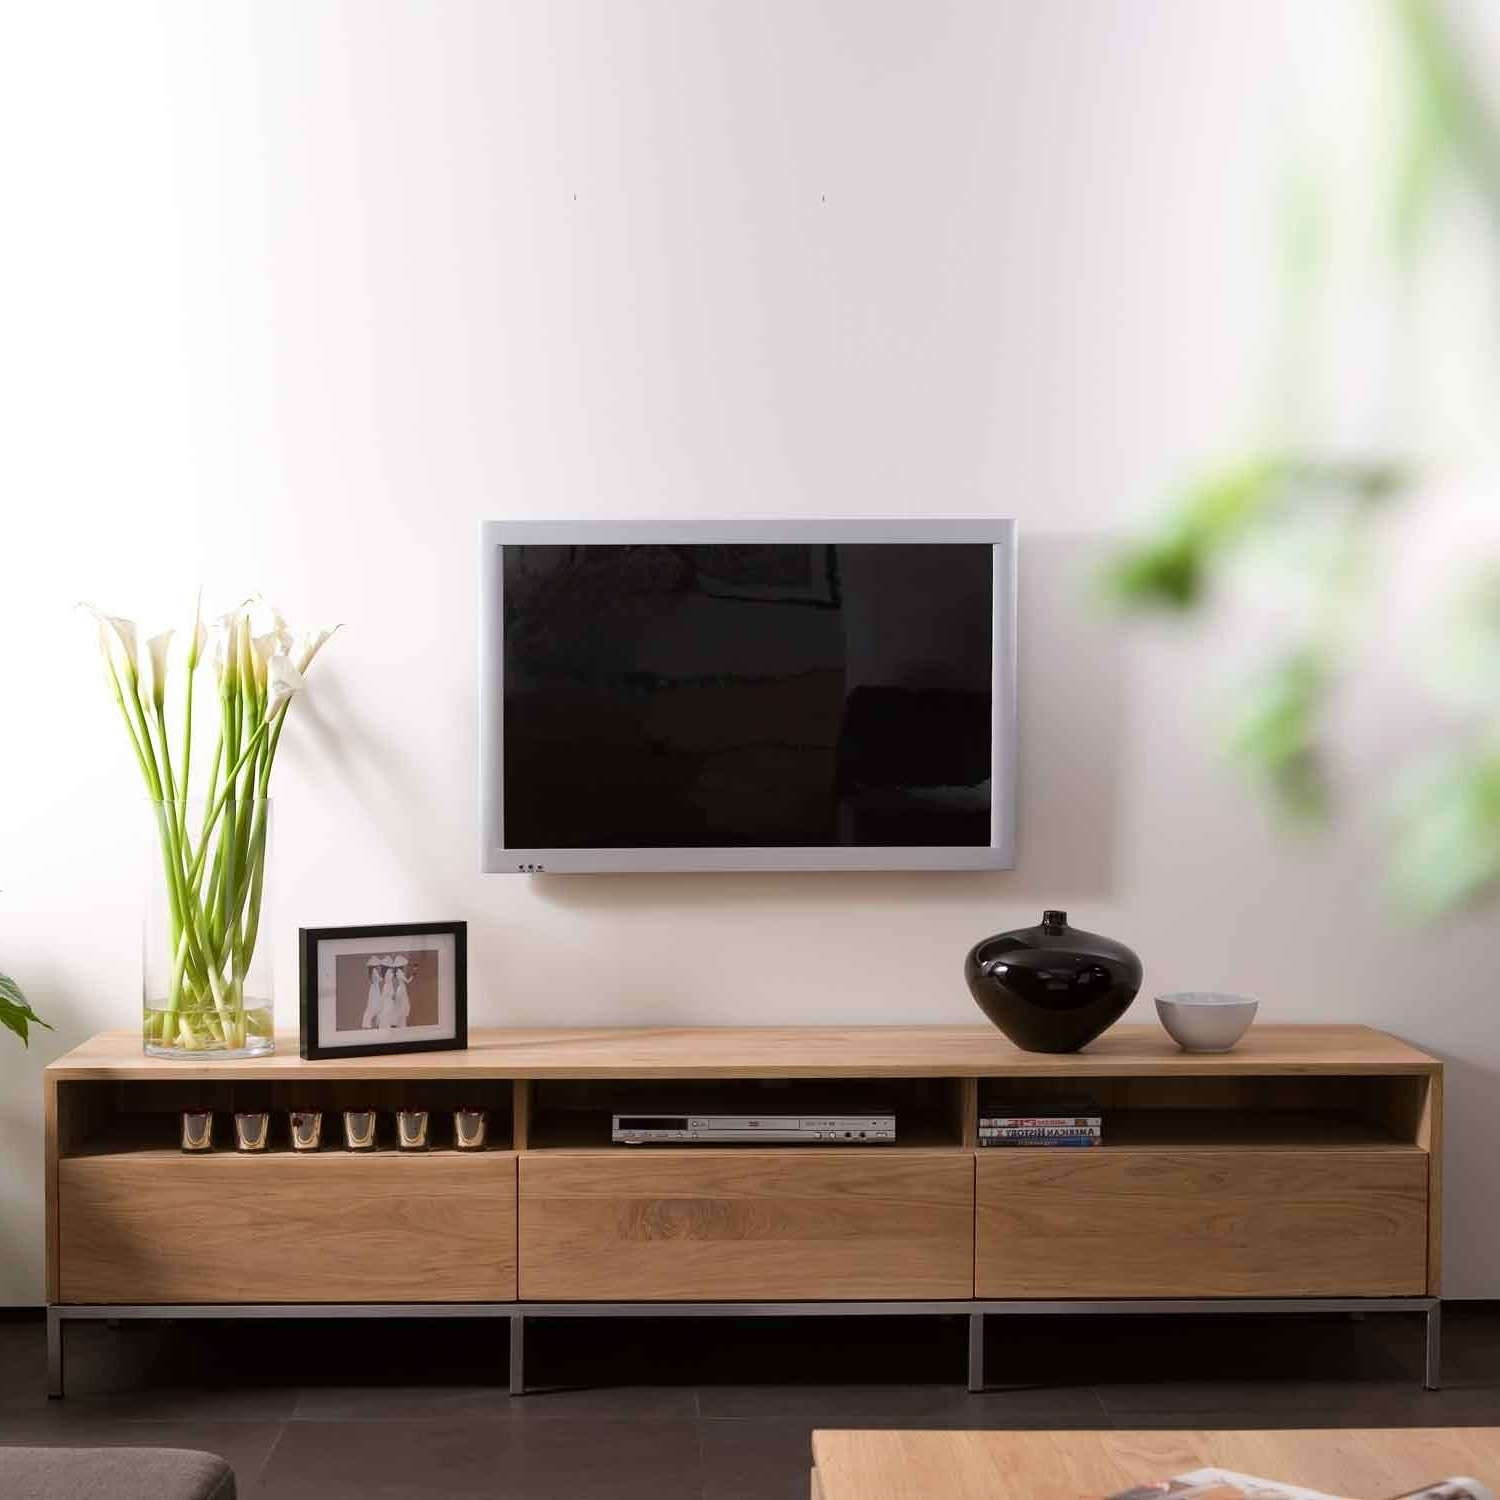 Ethnicraft Ligna Oak Tv Units | Solid Wood Furniture In Contemporary Oak Tv Cabinets (View 11 of 20)